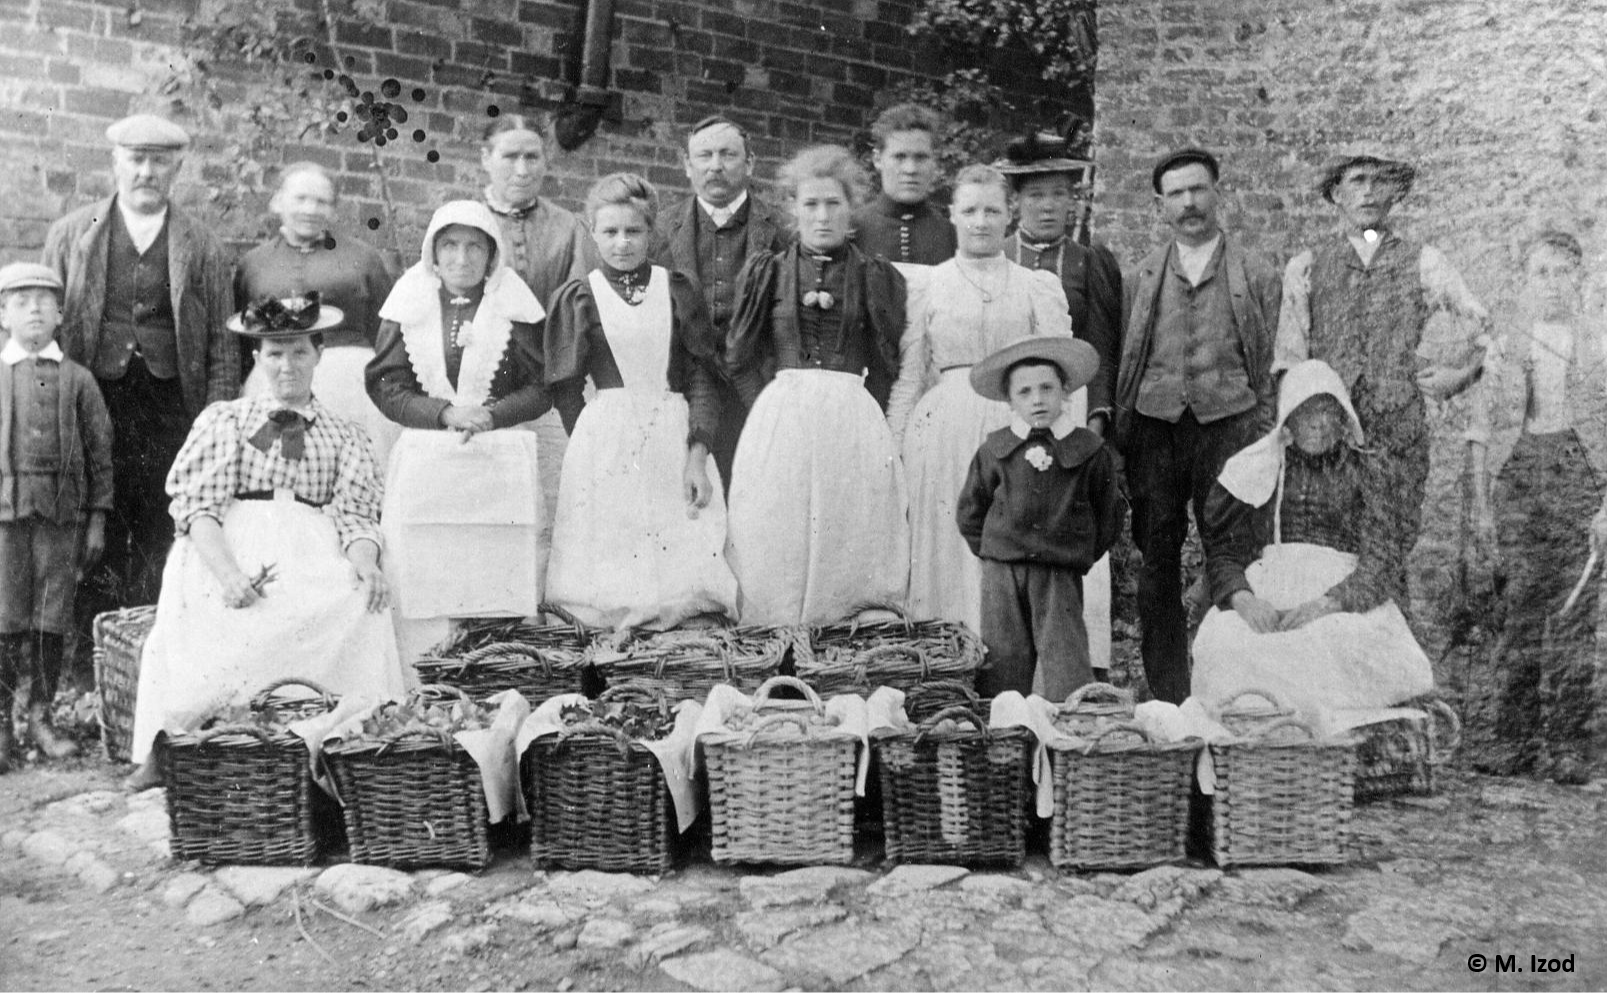 Posed workforce with filled crop baskets